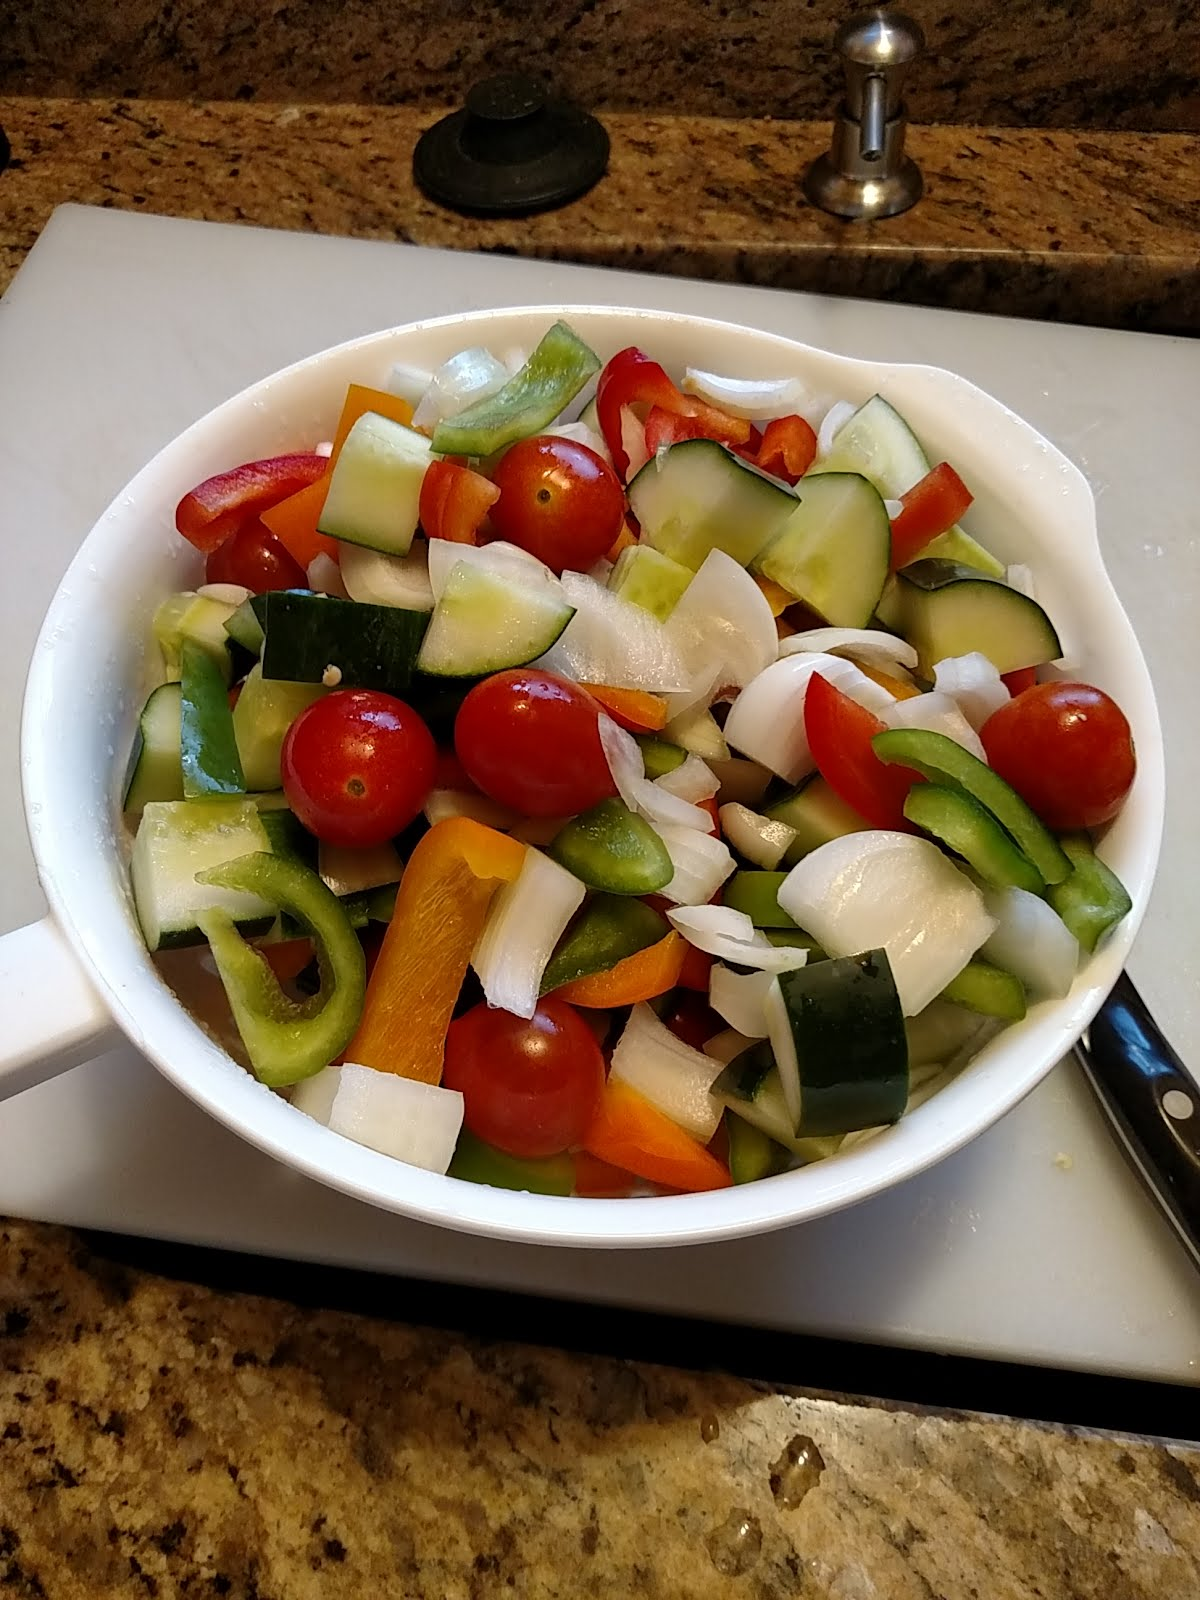 Sweet and Sour Pasta Salad | My Brain Echo - My Project Blog